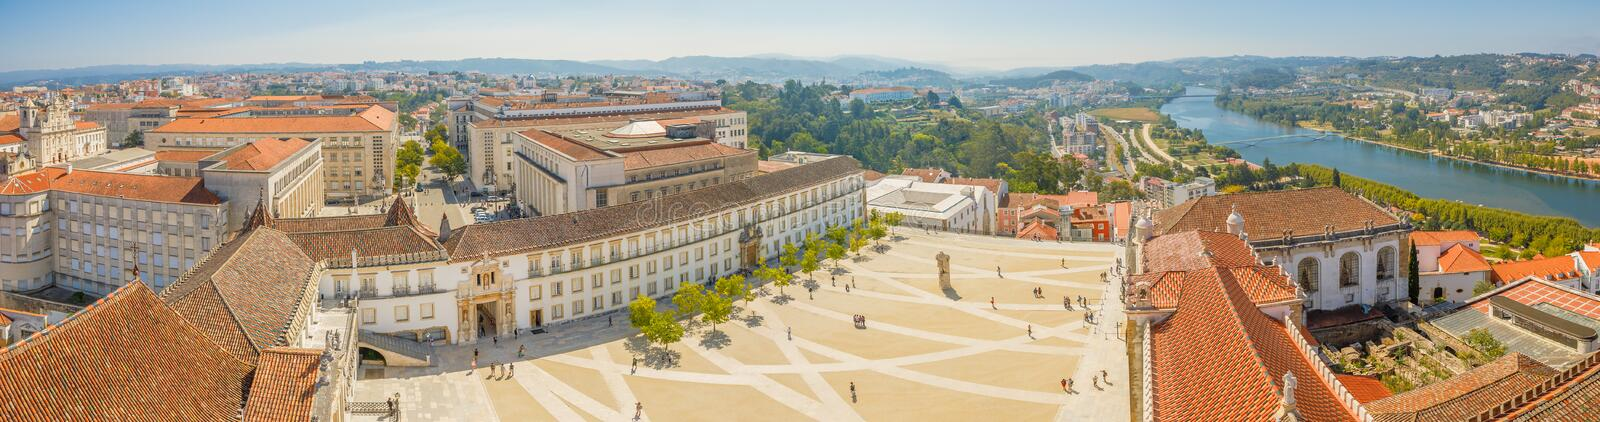 Coimbra University Panorama. Coimbra panorama from top of bell clock tower. Coimbra city skyline and University courtyard on Mondego river. Coimbra in Central stock photos